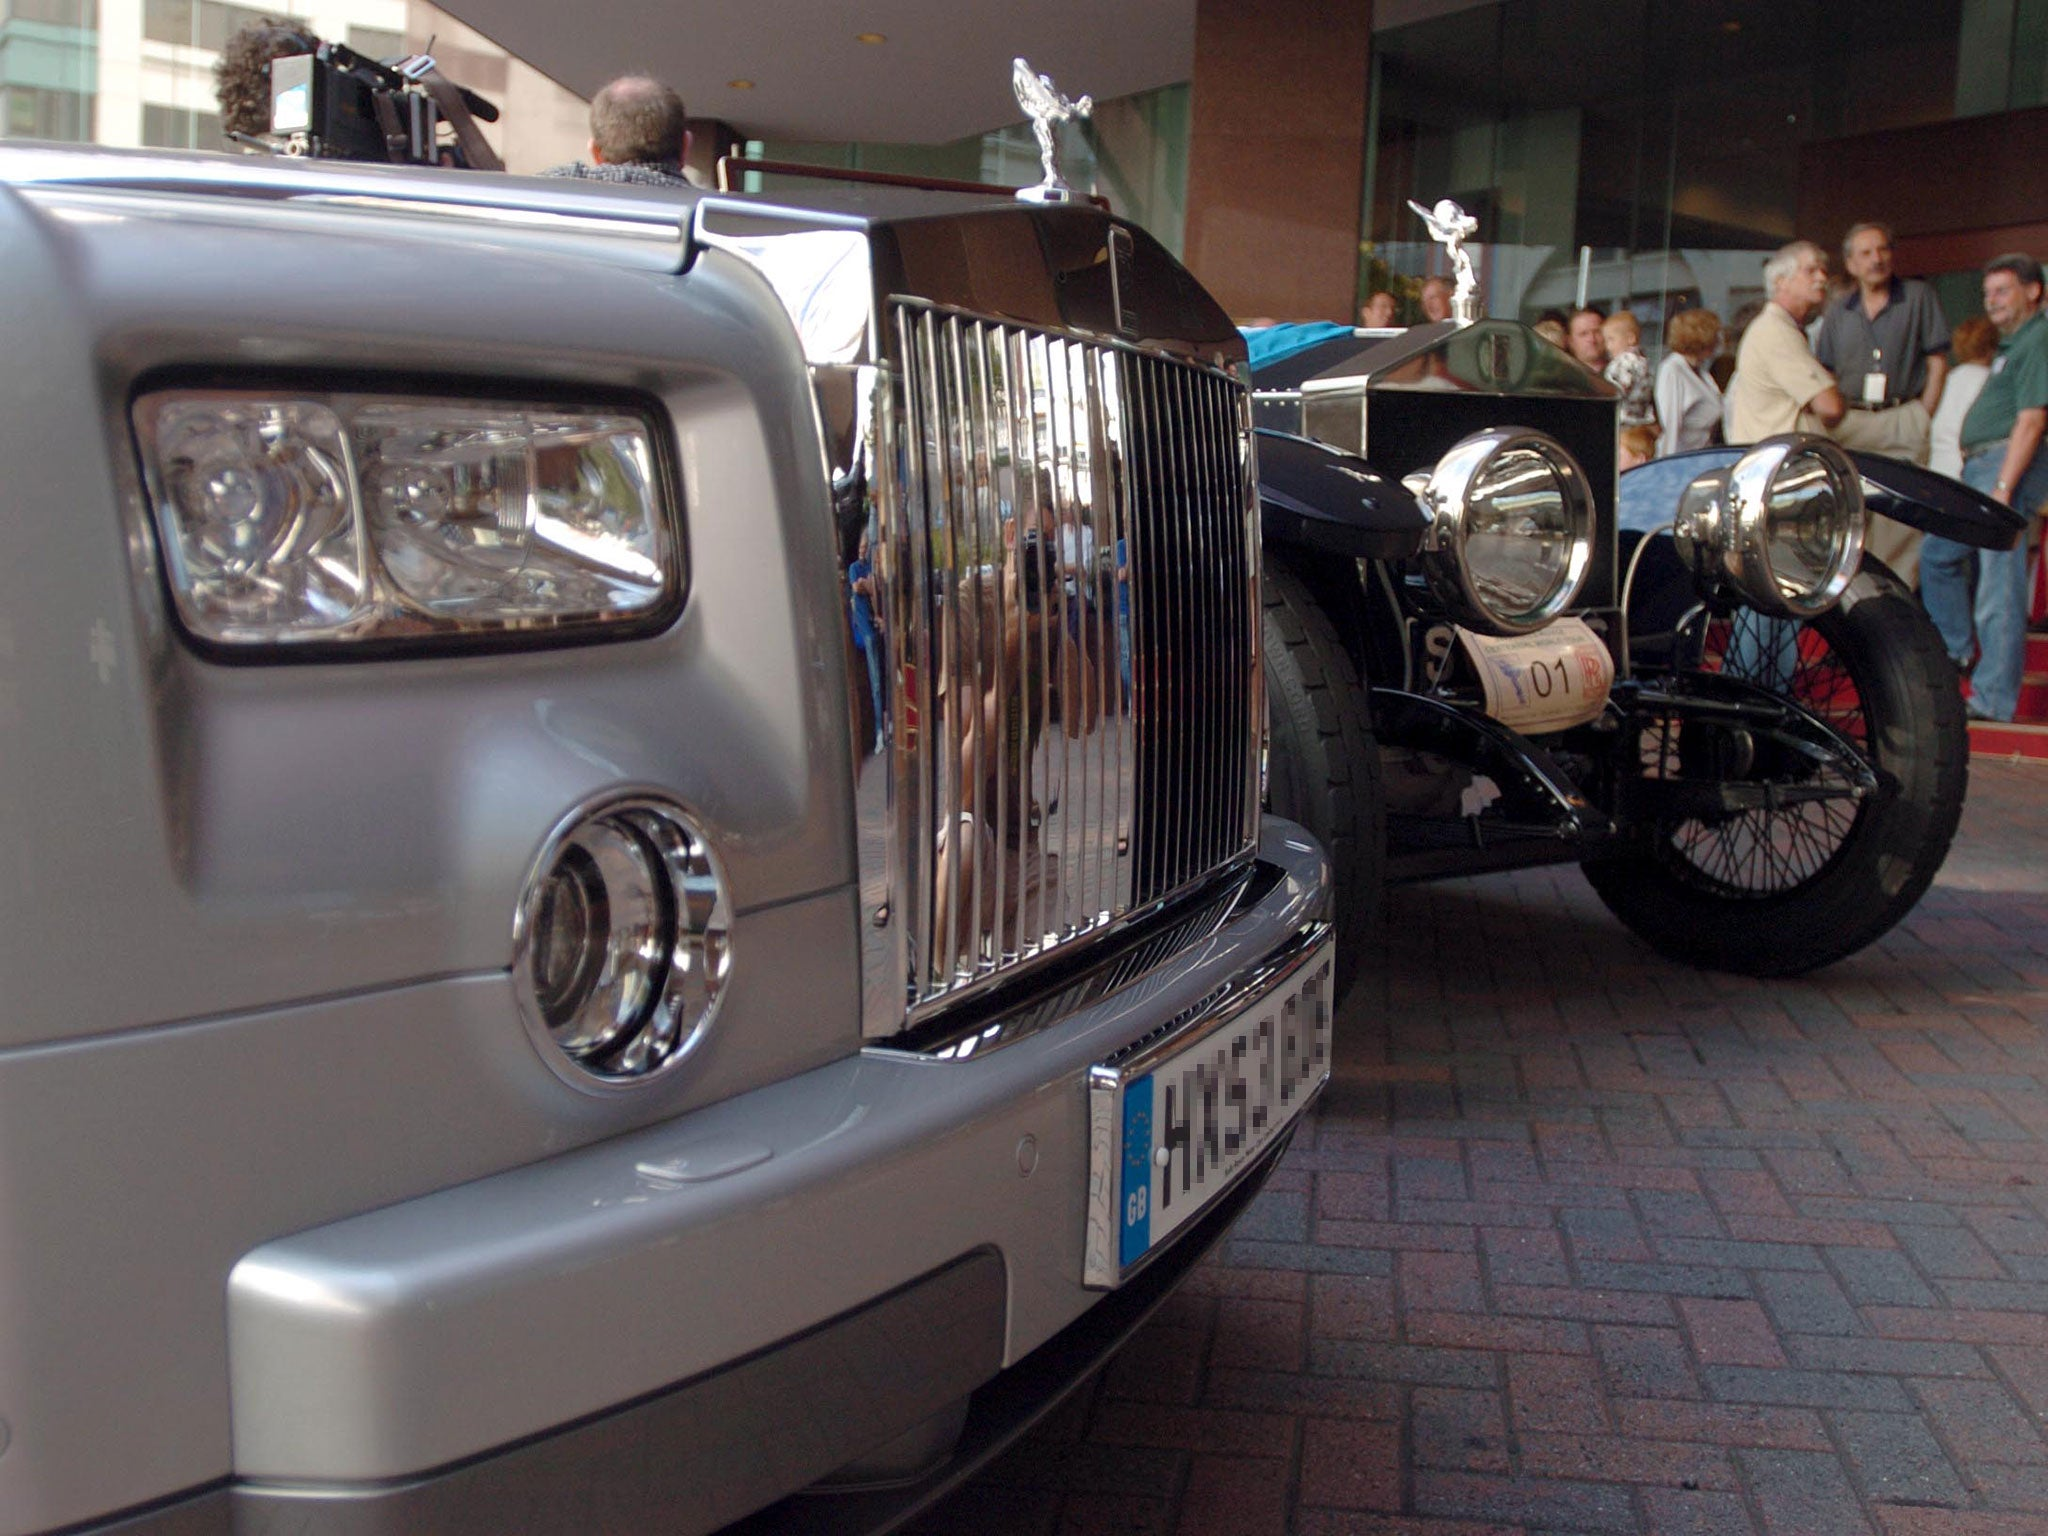 Design car number plates india - Indian Man Buys 9 Million Dubai License Plate For His Rolls Royce The Independent